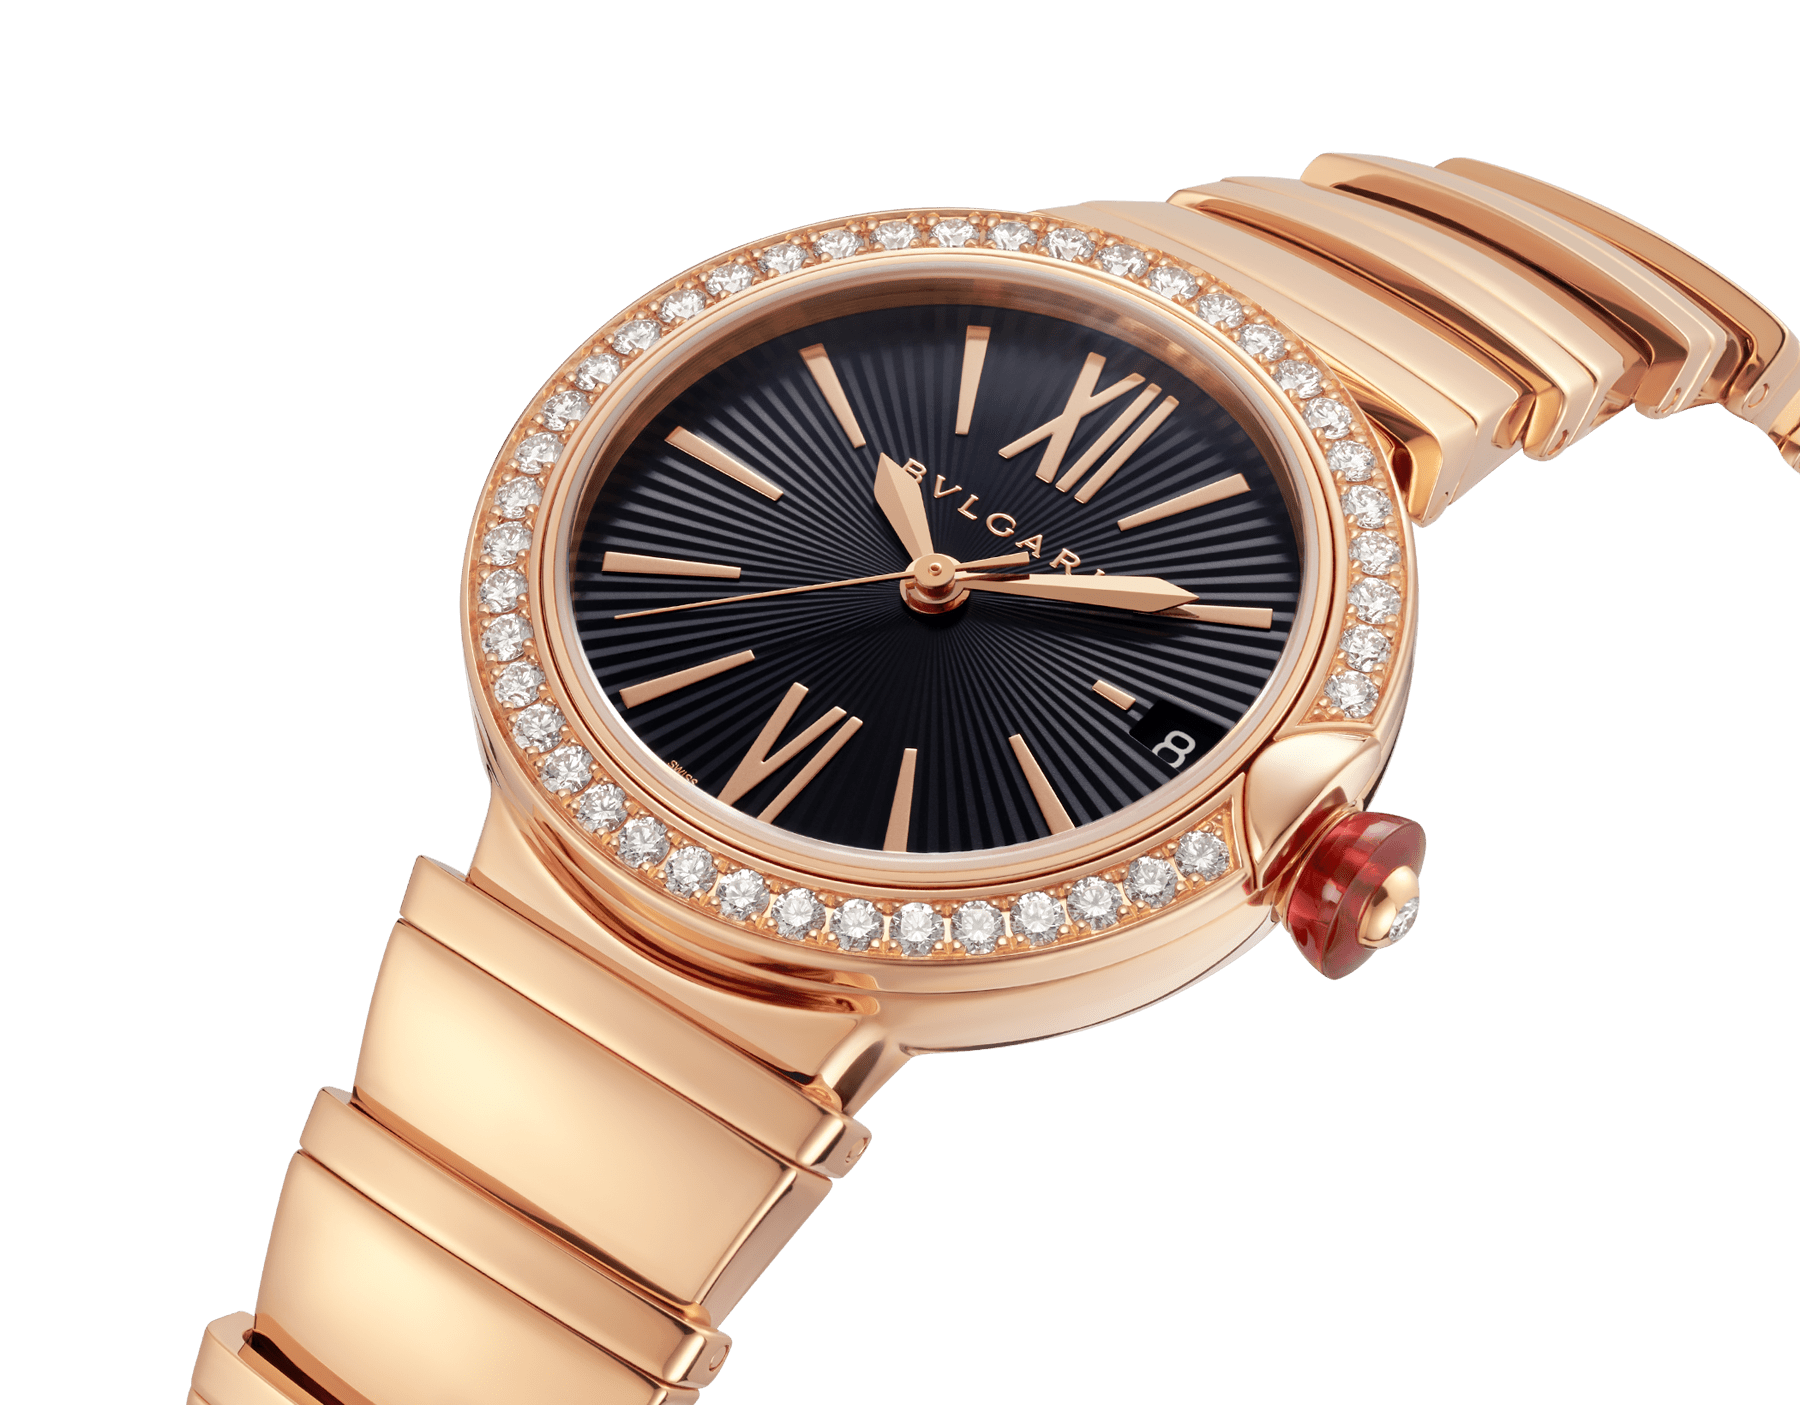 LVCEA watch with 18 kt rose gold and brilliant-cut diamond case, black opaline dial and 18 kt rose gold bracelet. 102260 image 2